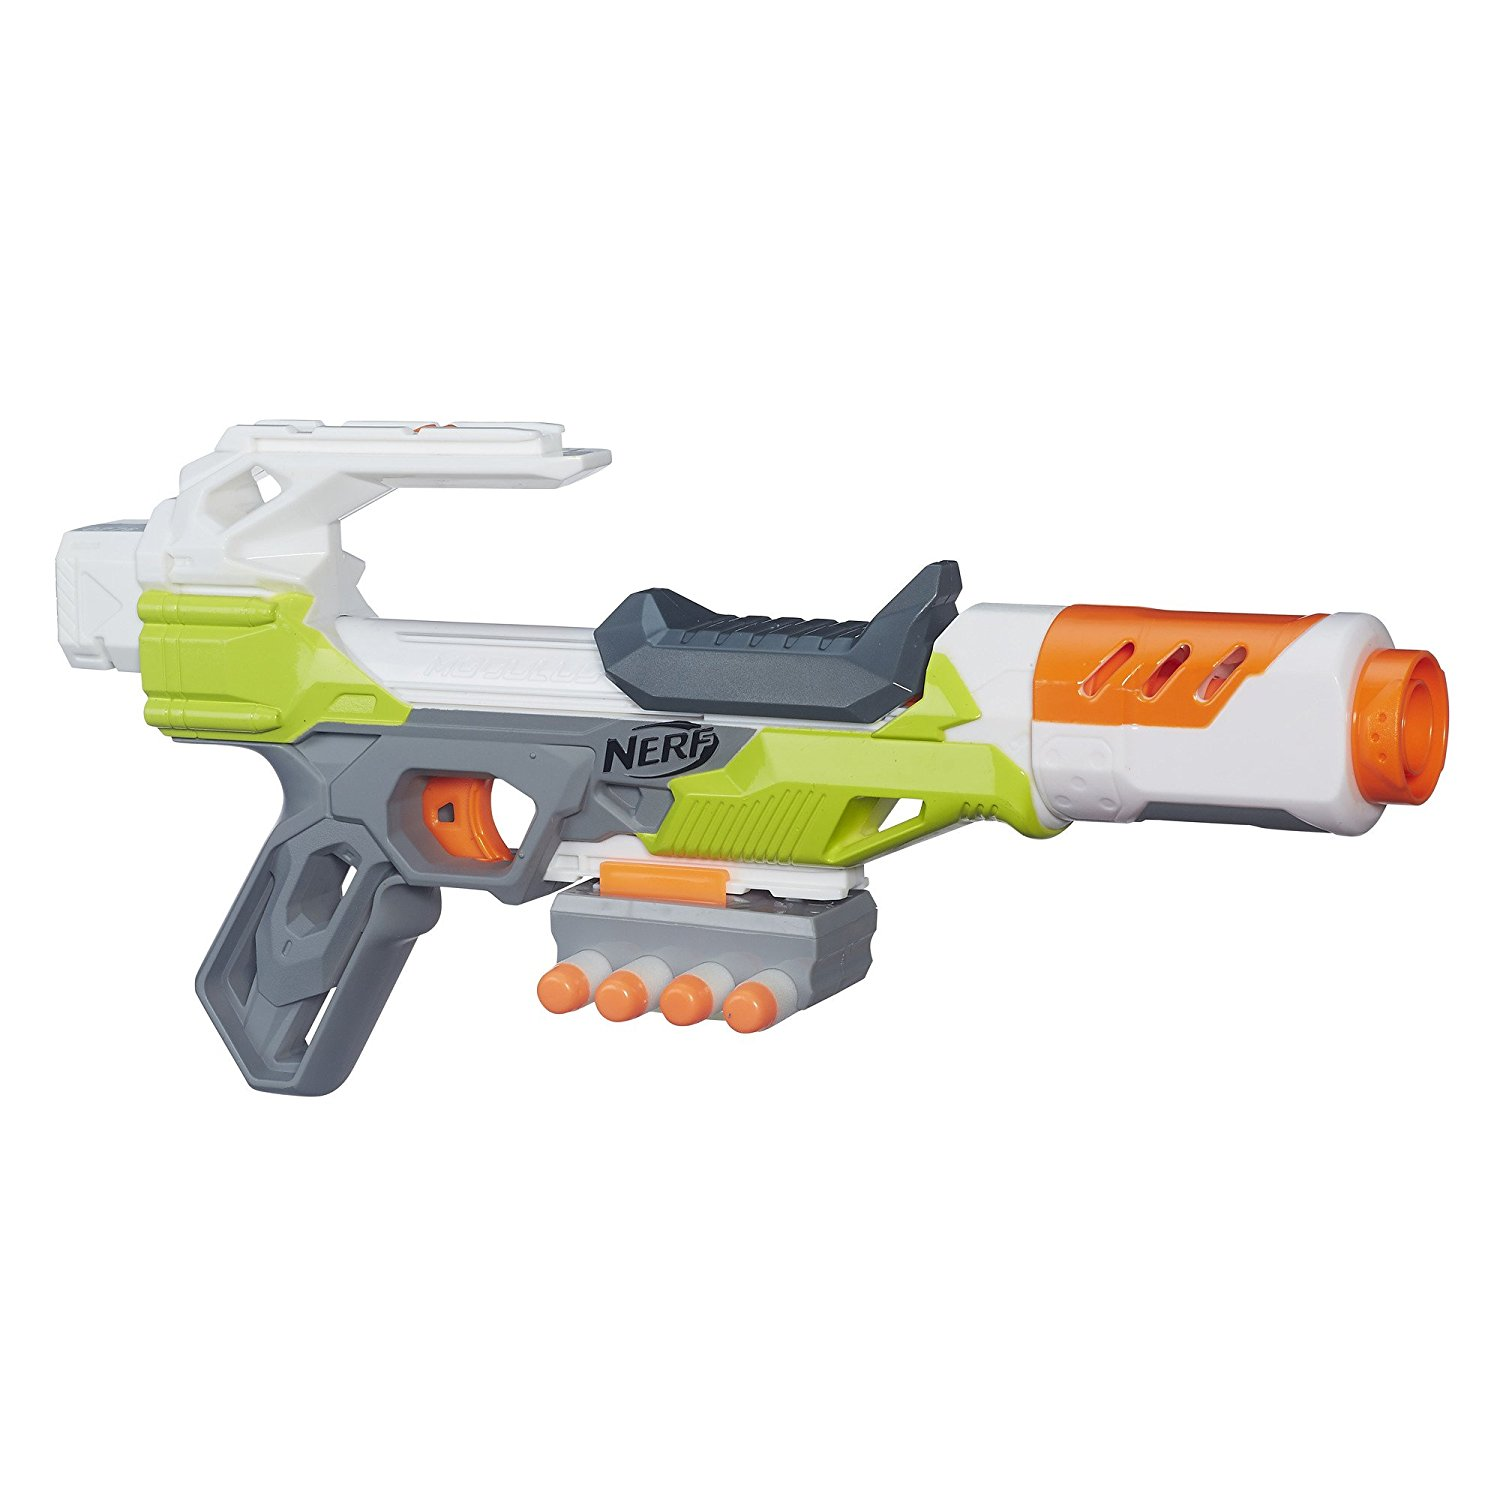 Modulus IonFire Blaster, Ship from America by